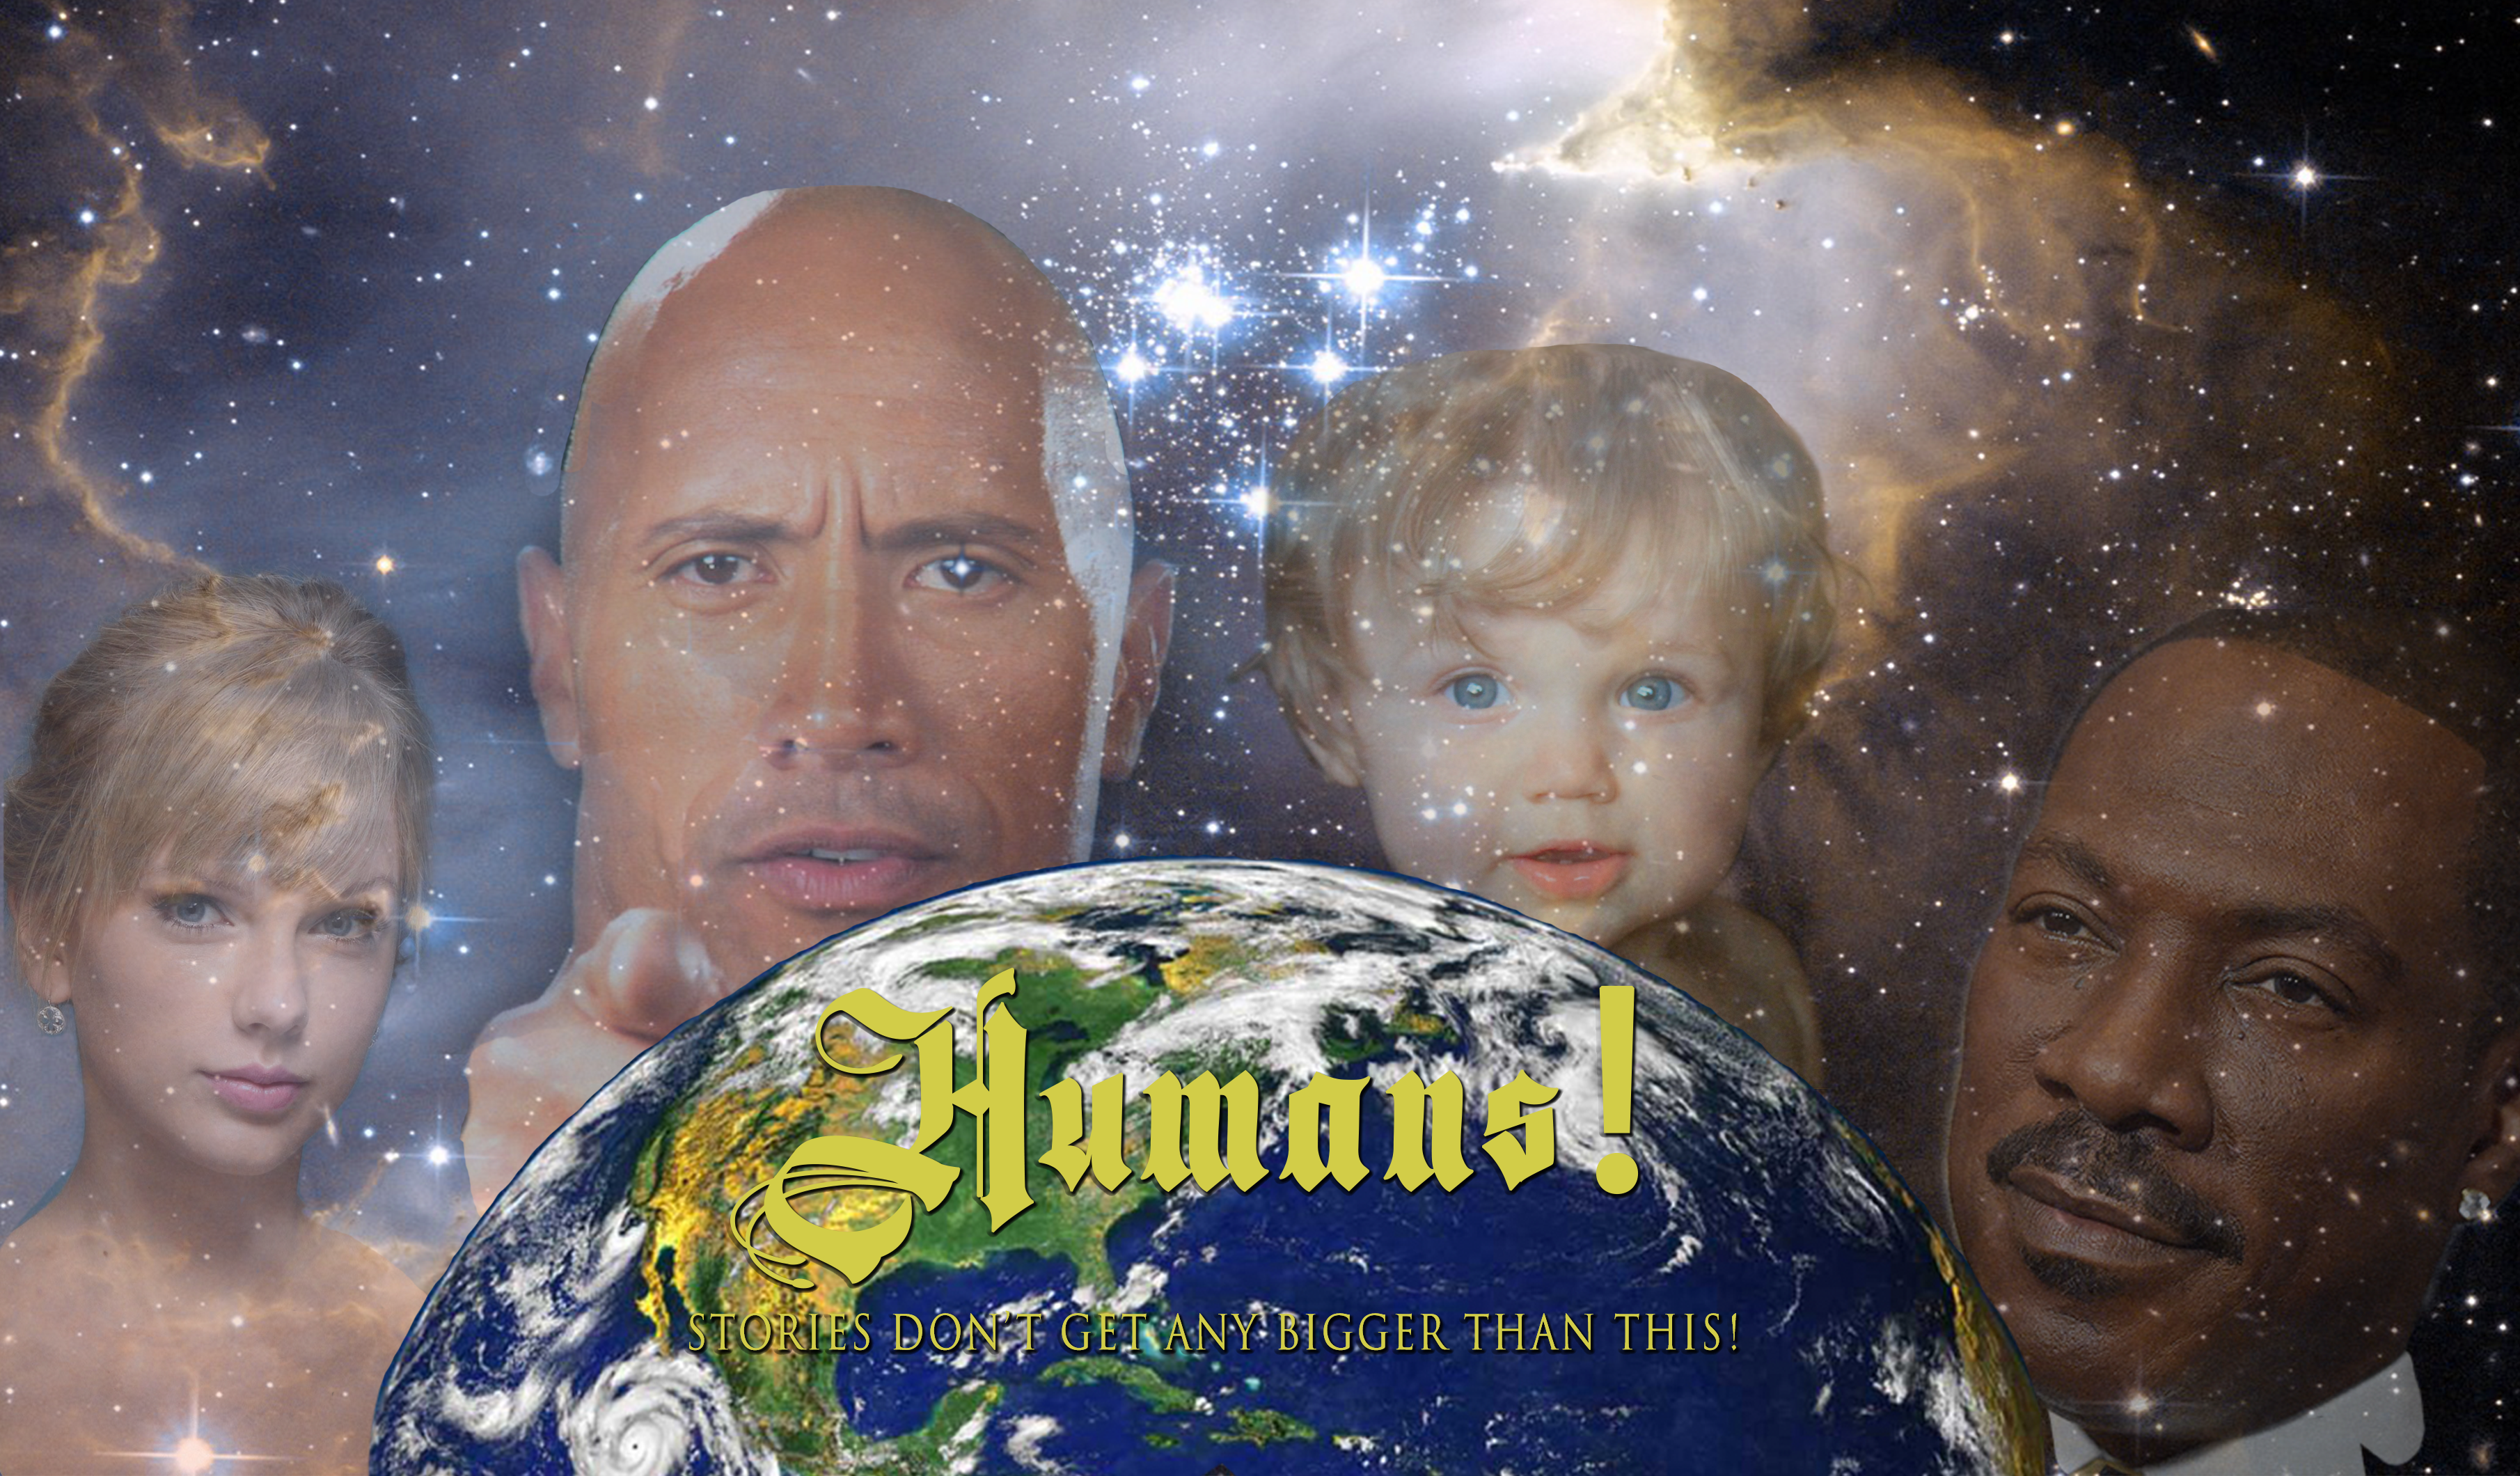 "Against a backdrop of outer space, we see four faces representing the Virgin Mary (Taylor Swift), God (Dwayne Johnson) Jesus (a curly headed baby boy) and Jesus (Eddie Murphy).  In the foreground is Planet Earth, and with the word ""Humans"" superimposed on it."